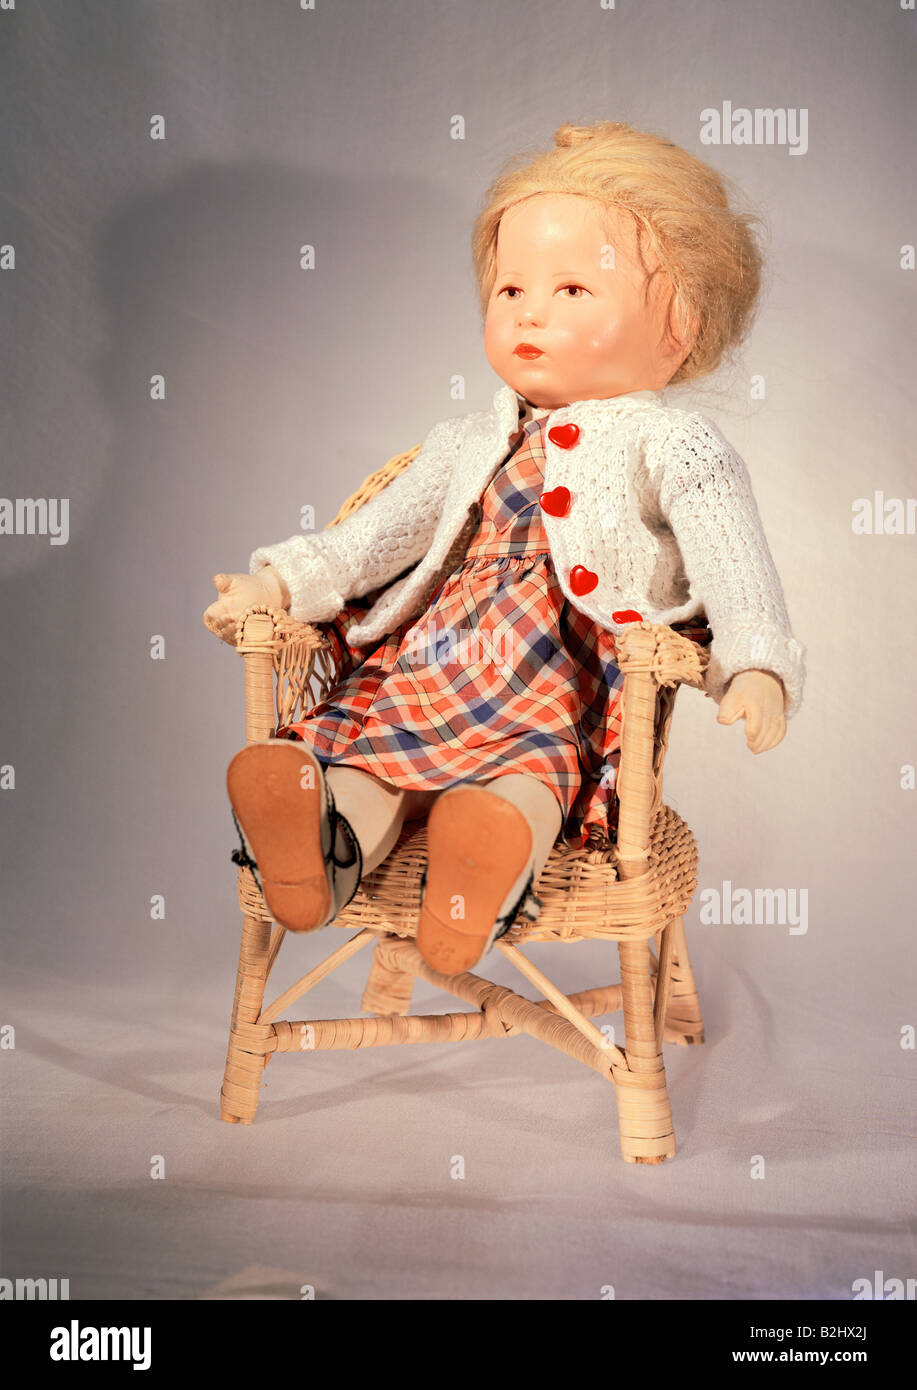 toys, dolls, 'Hampelchen', by Kaethe Kruse (1883 - 1968), height 45 cm, Germany, early 1930s, Munich doll - Stock Image